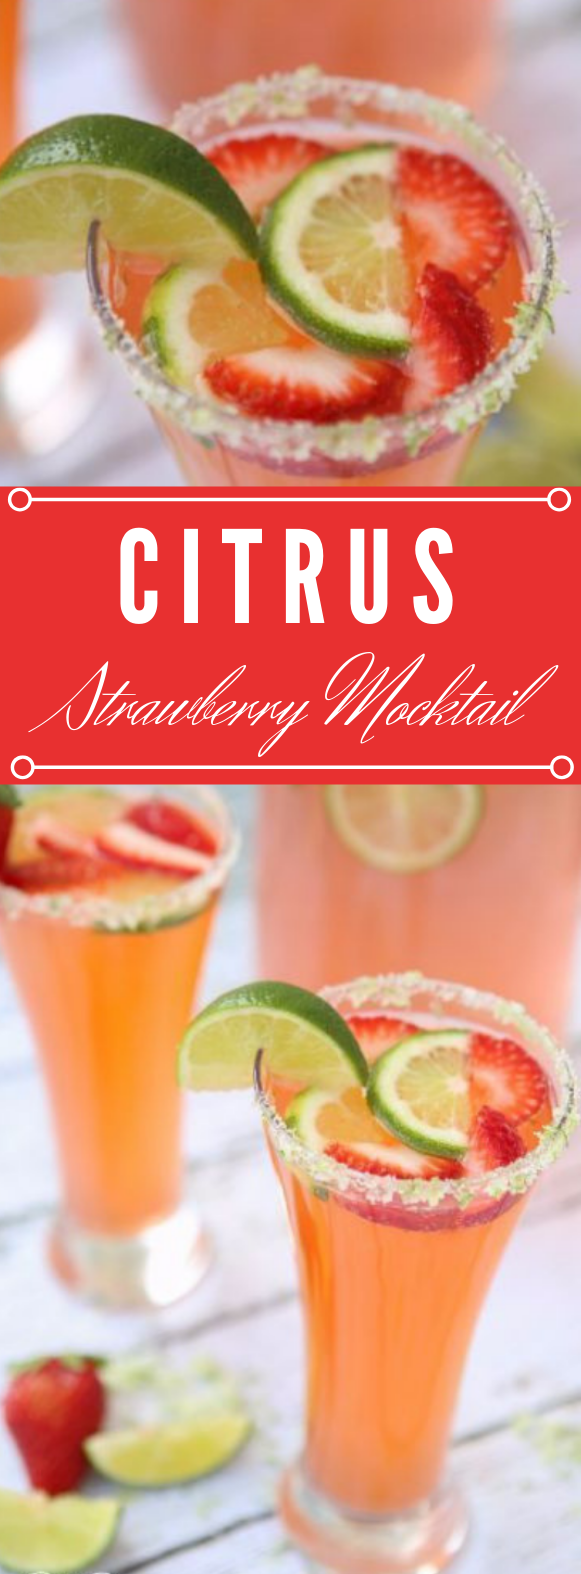 CITRUS STRAWBERRY MOCKTAIL #cocktail #strawberry #drink #strawberry #smoothie